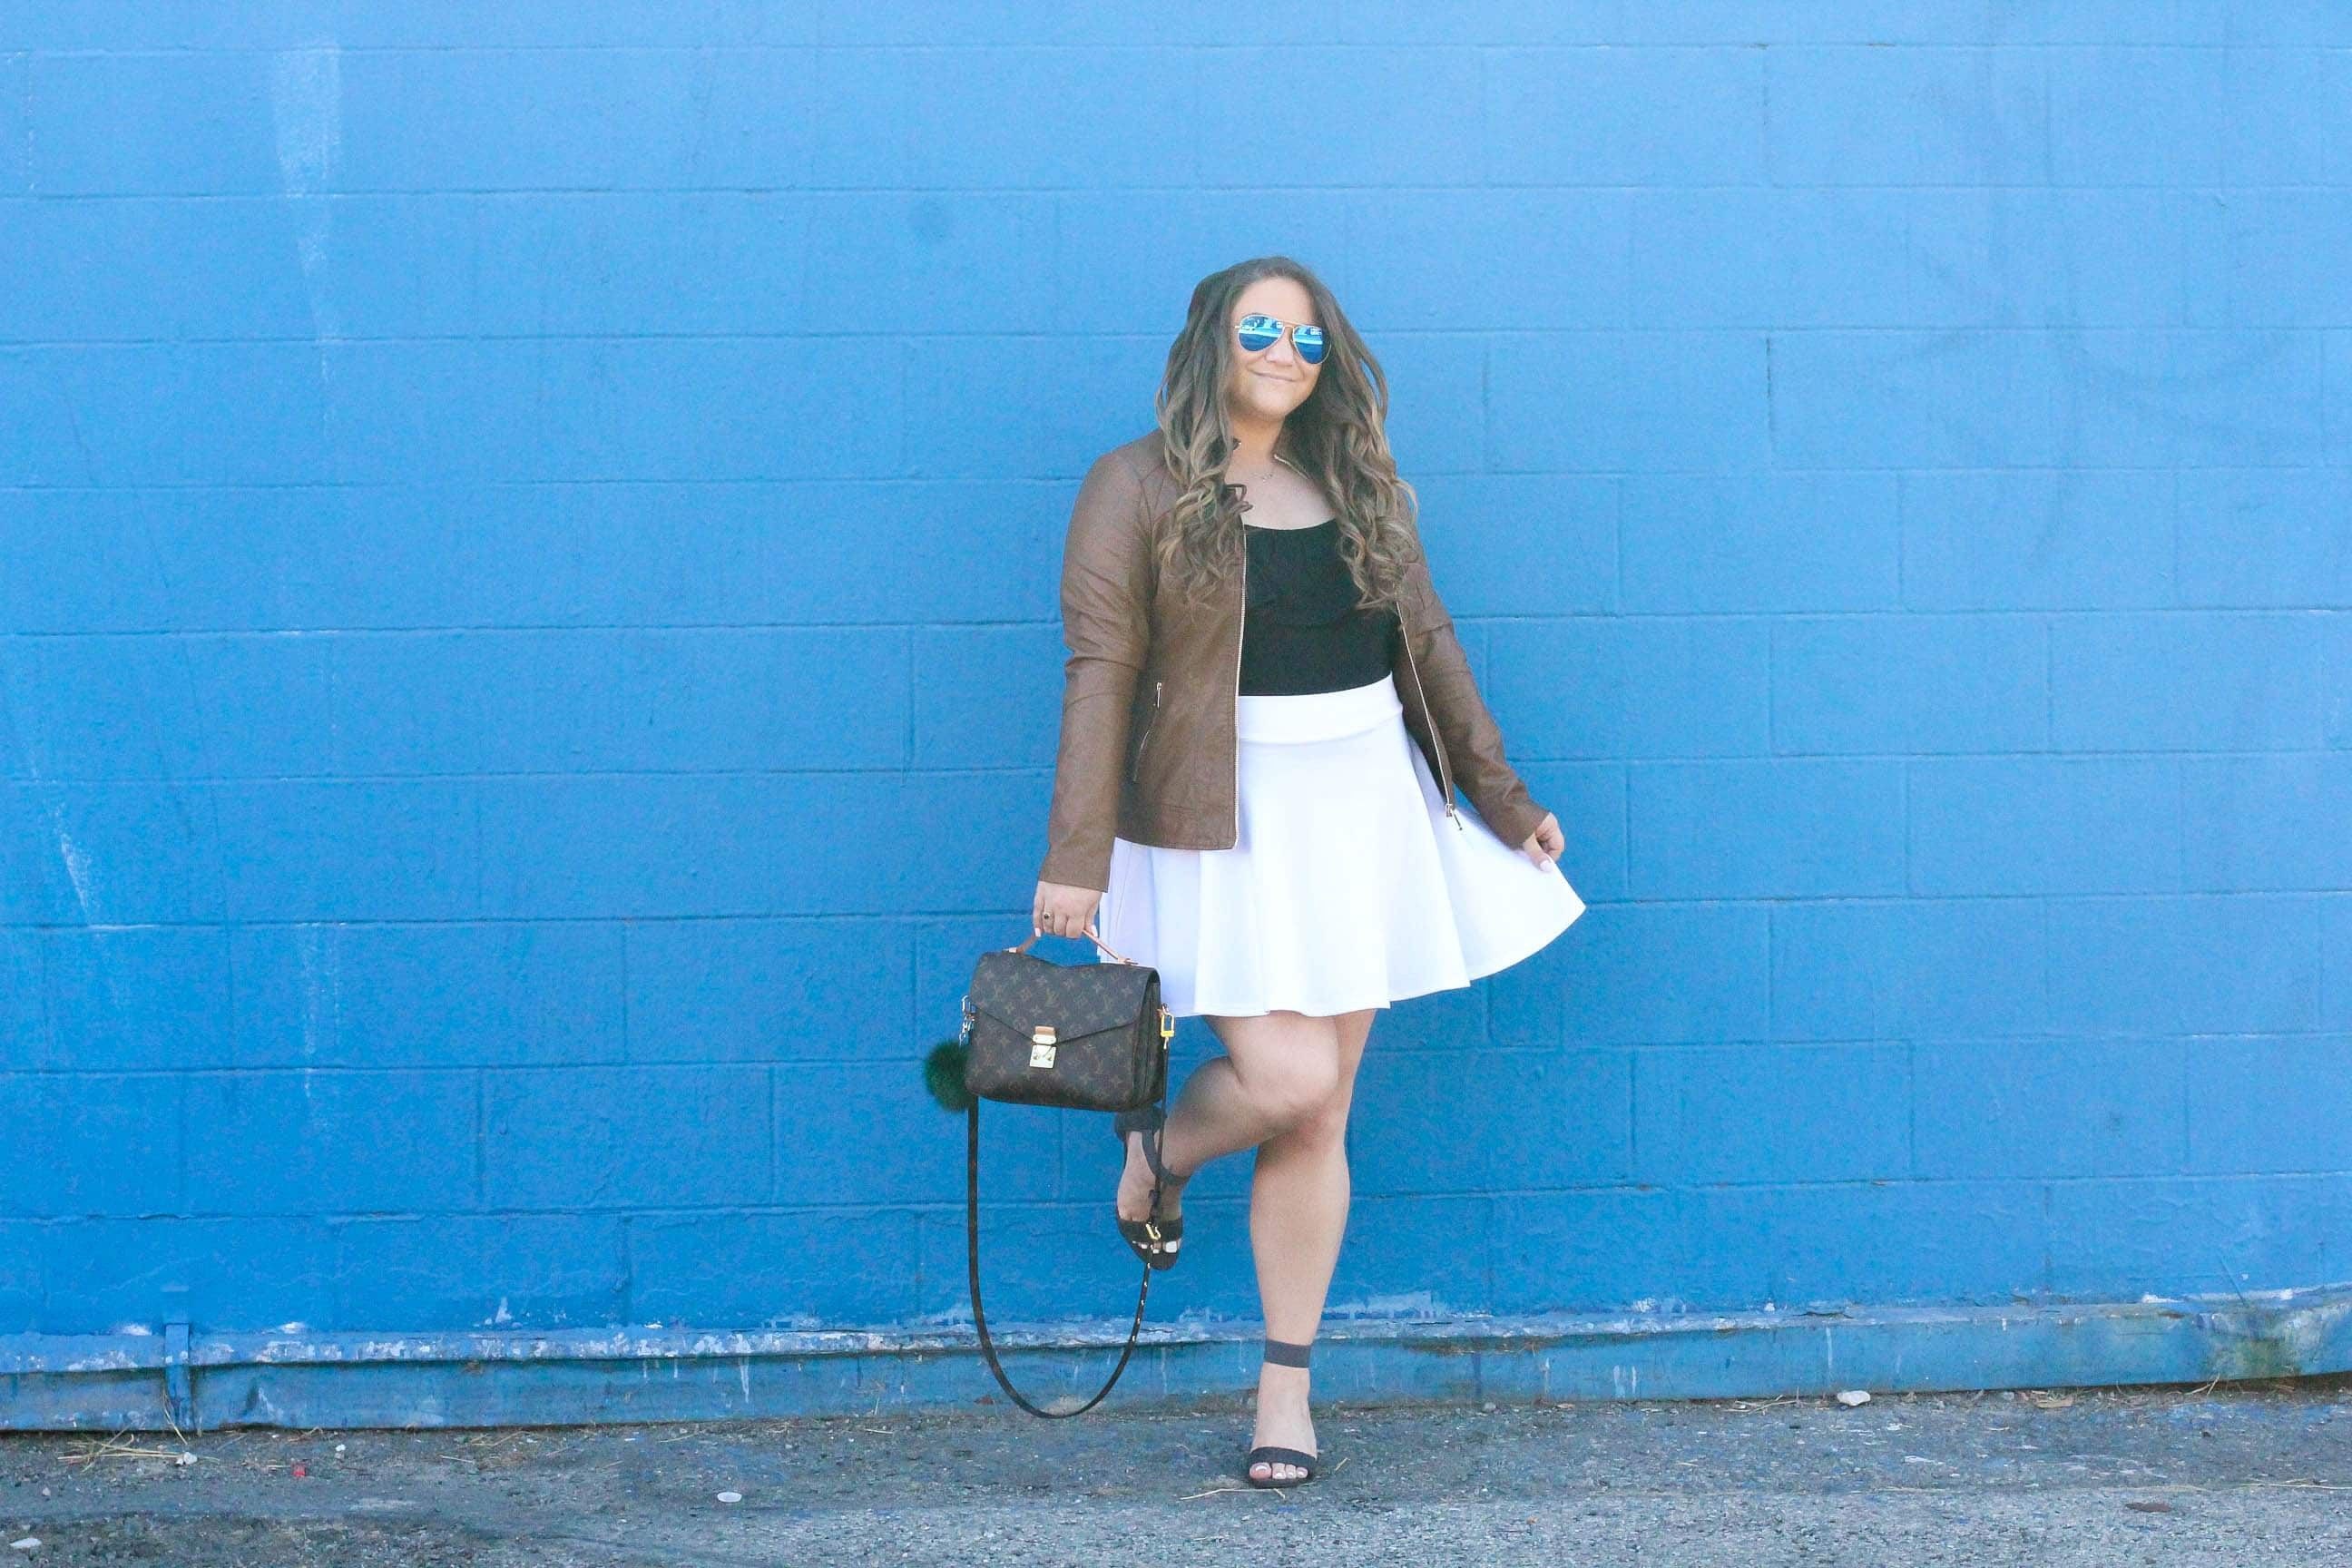 missyonmadison, missyonmadison instagram, missyonmadison blog, blogger, la blogger, vegan moto jacket, vegan leather, vegan leather jacket, coalition la, fashion blog, fashion blogger, style blog, style blogger, outfit inspo, fall style, fall 2017 style, winter 2017 style, skater skirt, bodysuit, white mountain shoes, white mountain sandals, style blog, what to wear for fall, how to style vegan leather, tan moto jacket, tan vegan leather moto jacket,